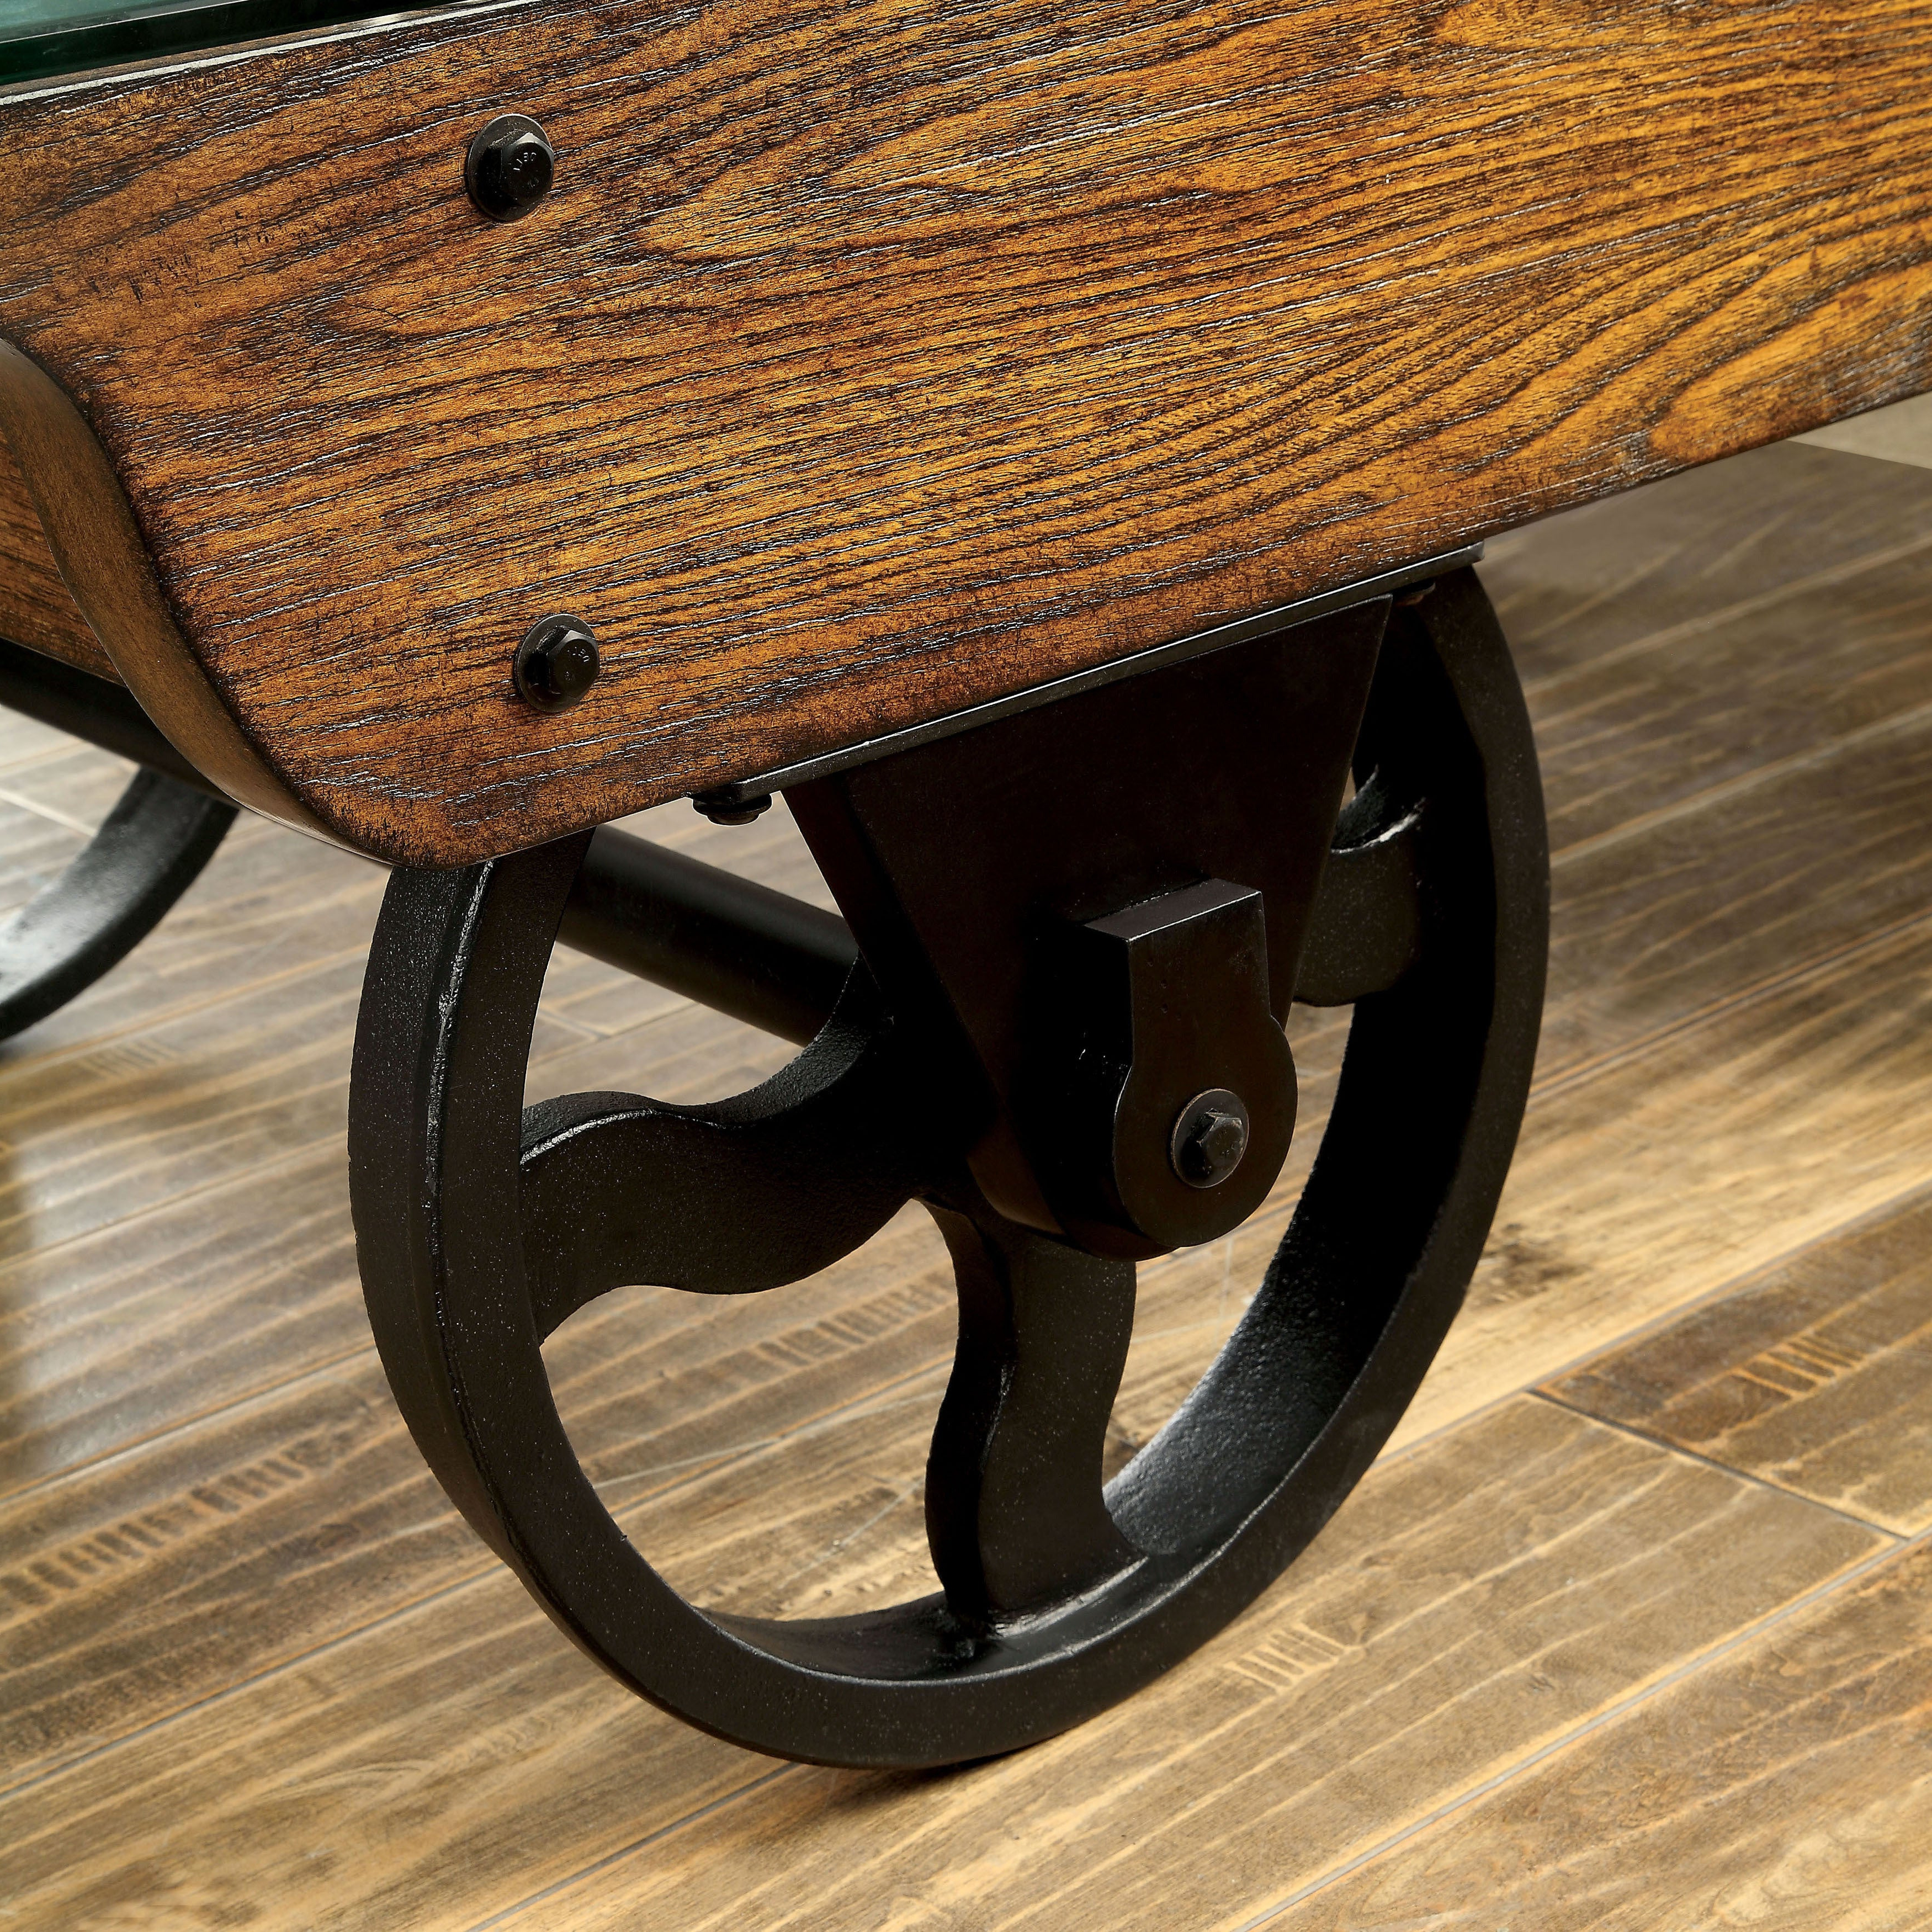 2020 Furniture Of America Charlotte Weathered Oak Glass Top Coffee Tables Regarding Furniture Of America Charlotte Weathered Oak Glass Top Coffee Table (View 3 of 20)